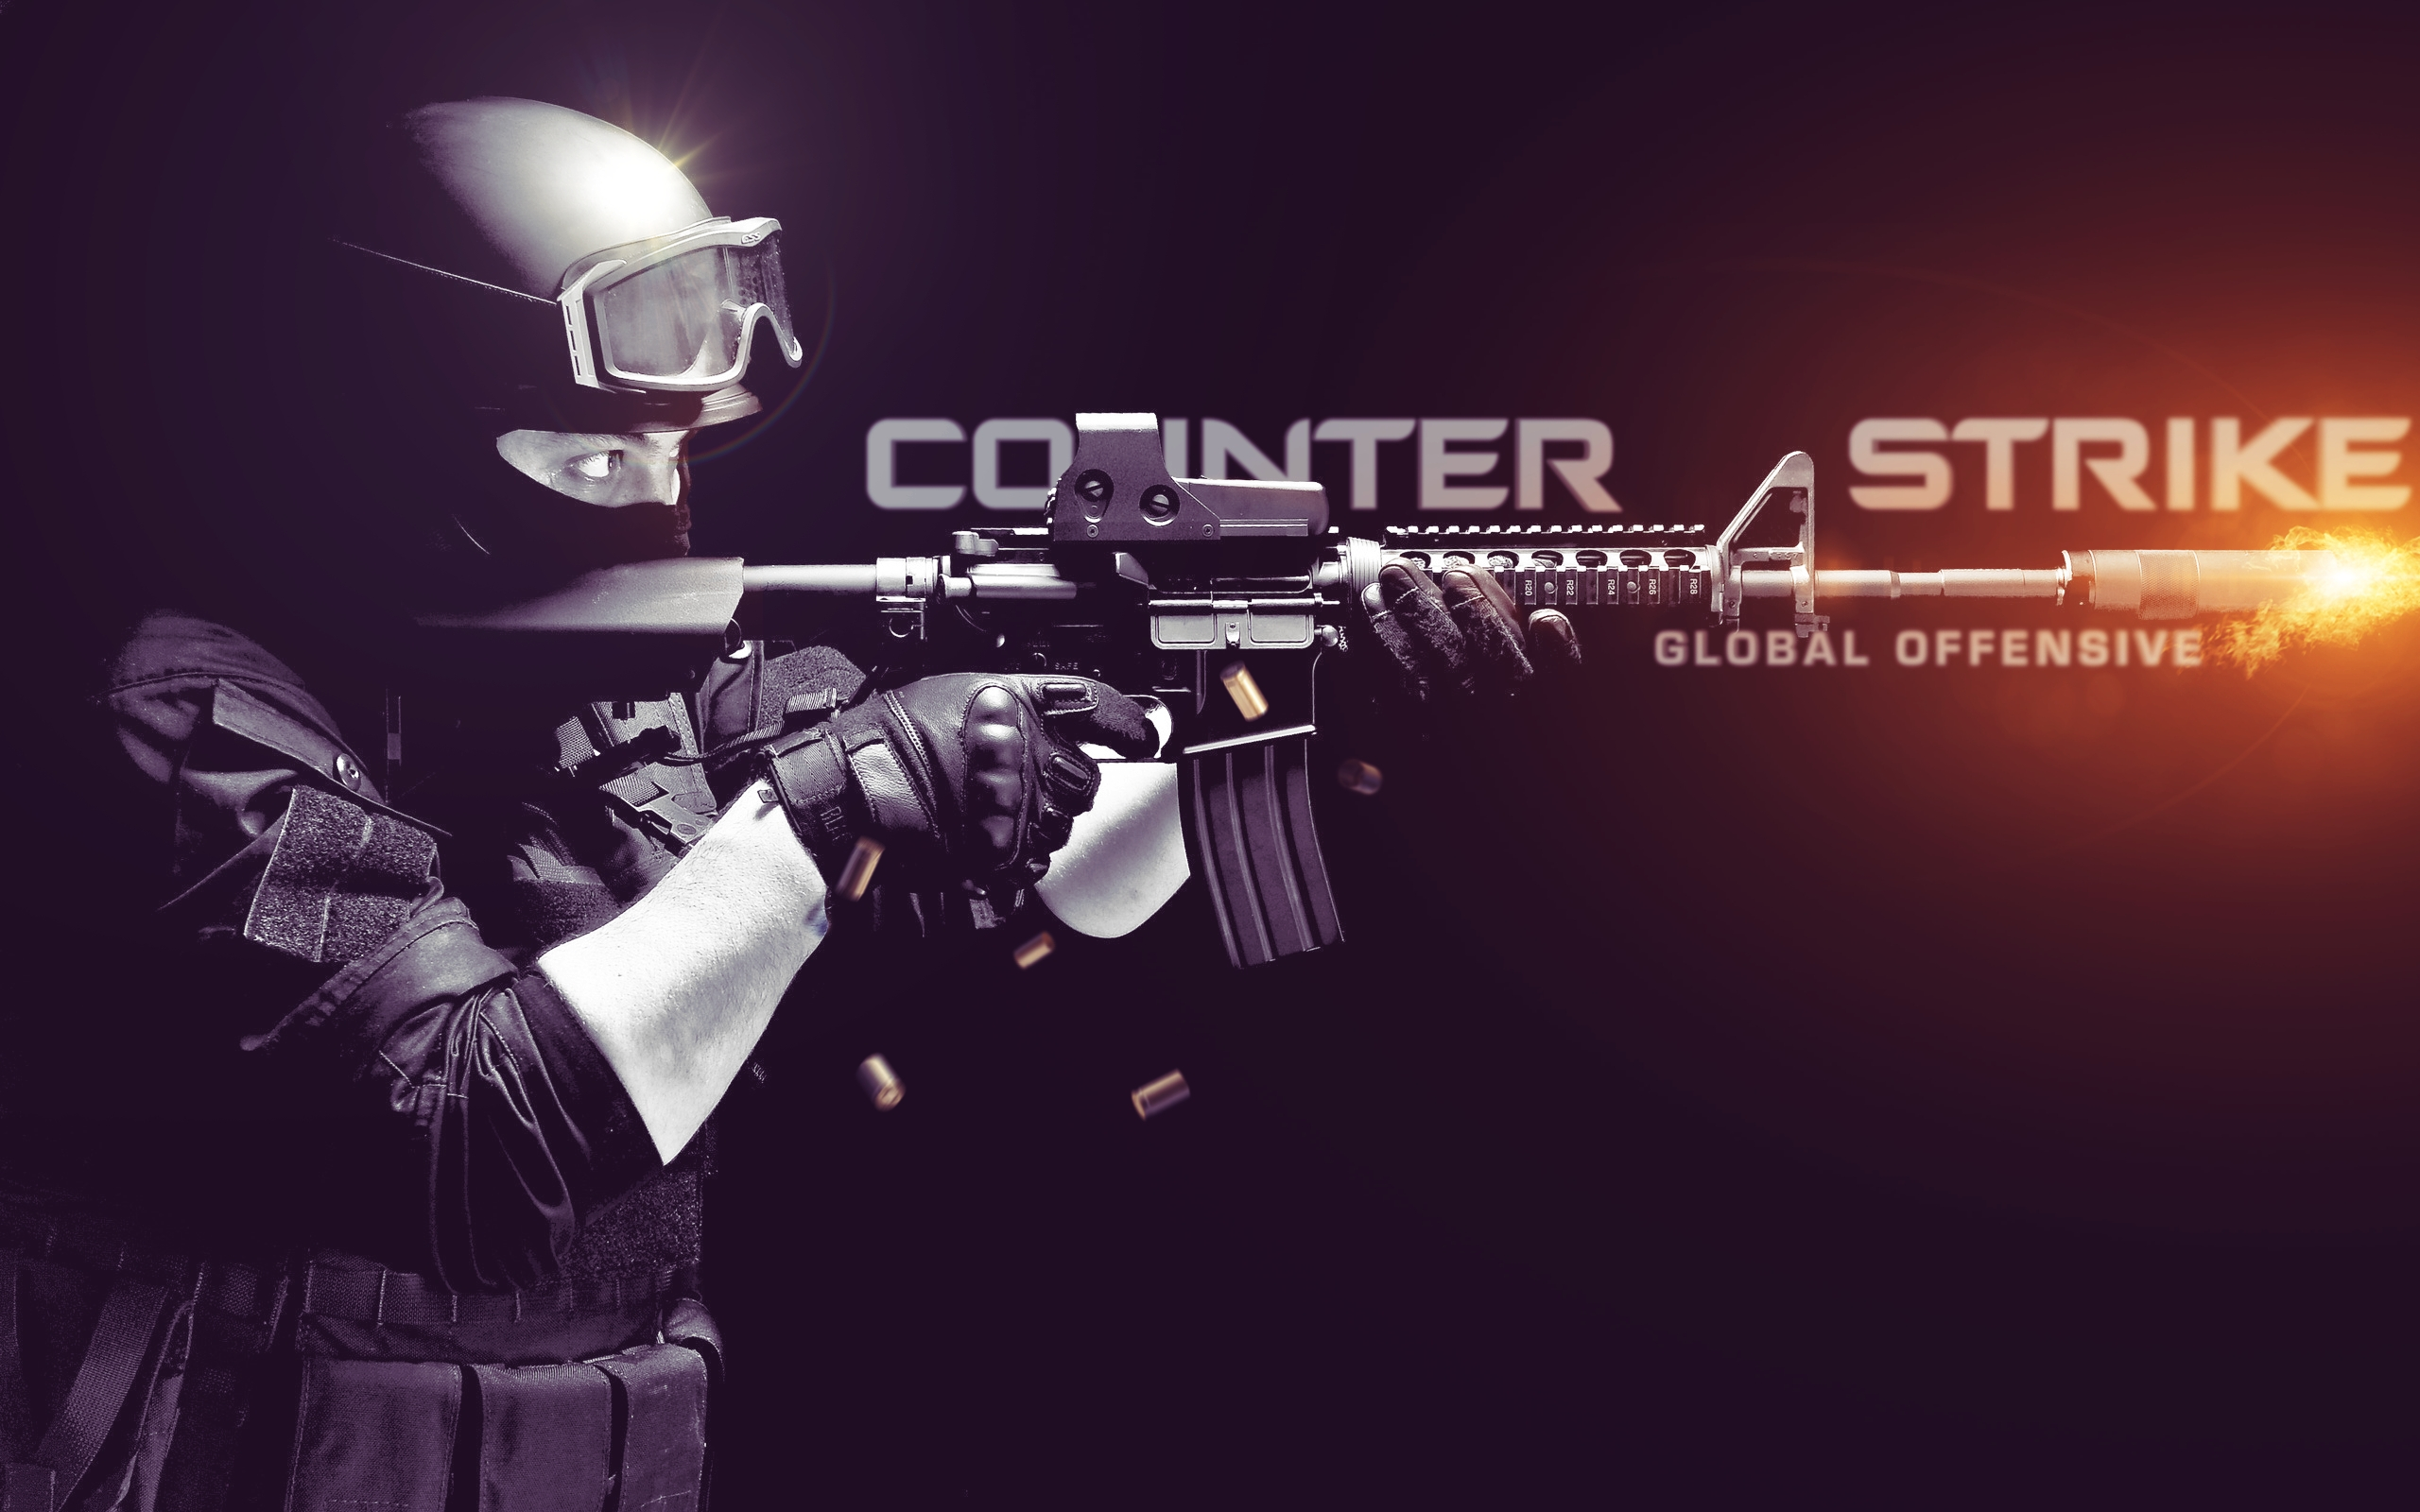 10 Latest Counter Strike Desktop Wallpapers FULL HD 1920×1080 For PC Desktop